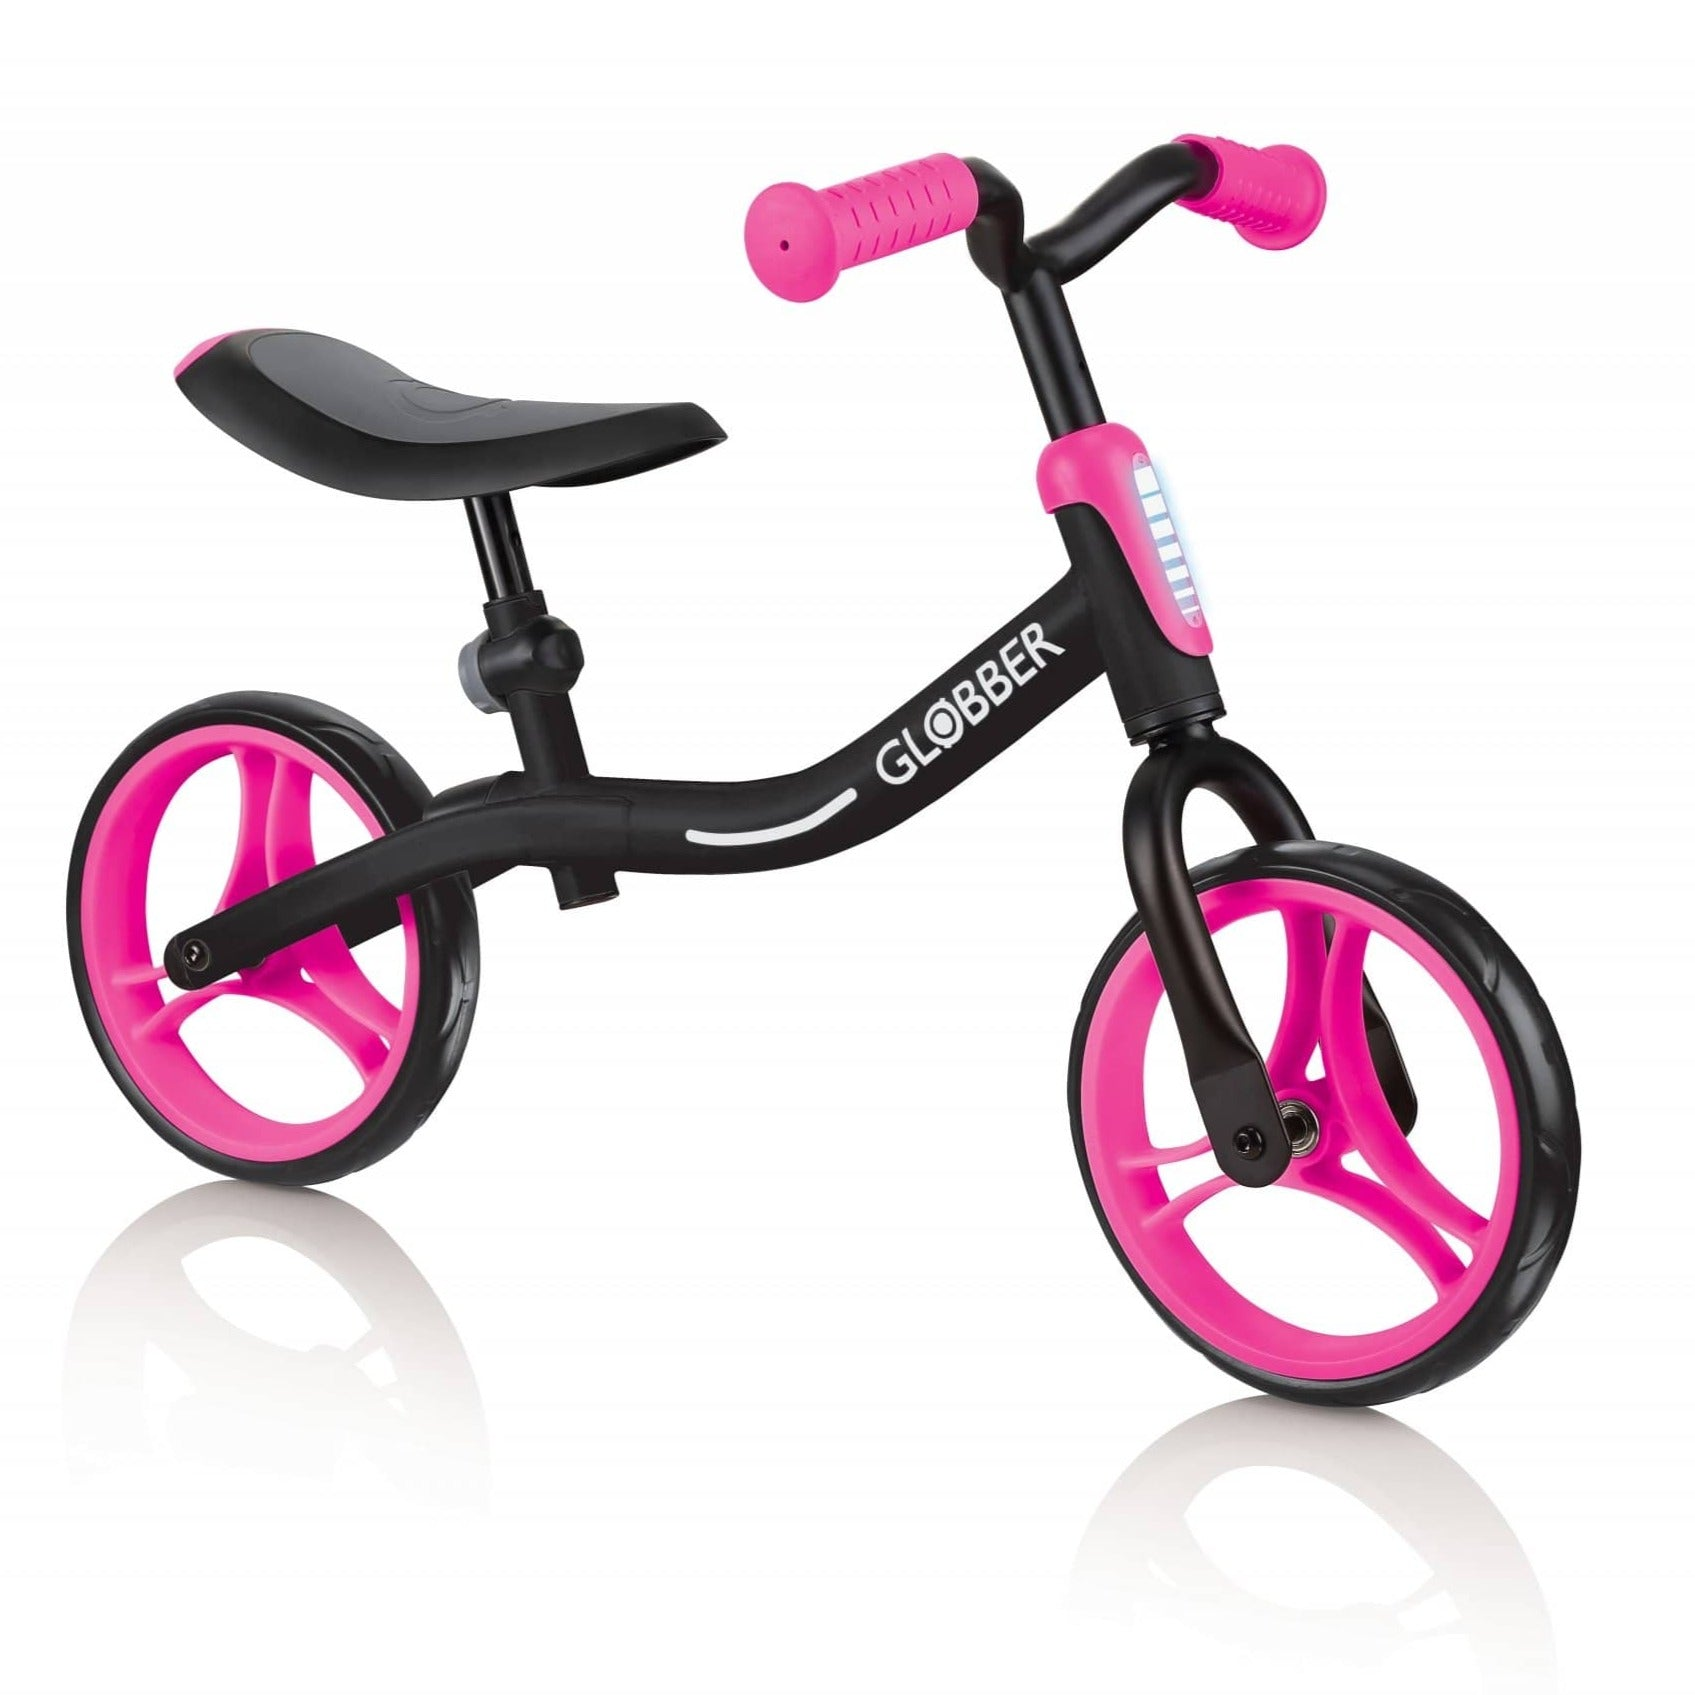 Globber Go Bike - Neon Pink Ages 2+